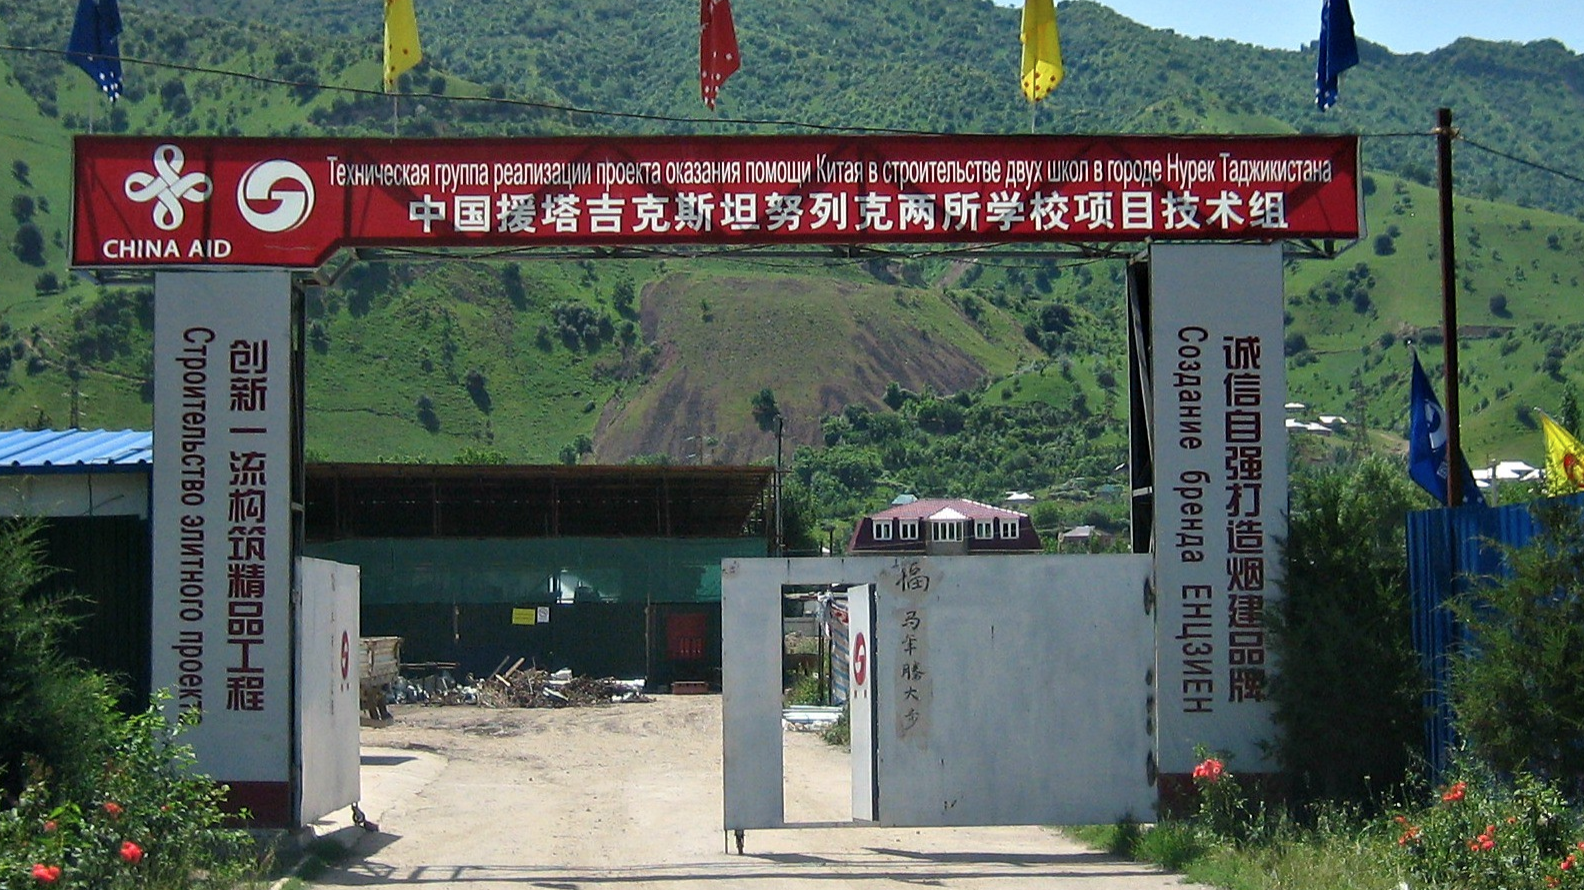 China Aid project in Nurek.